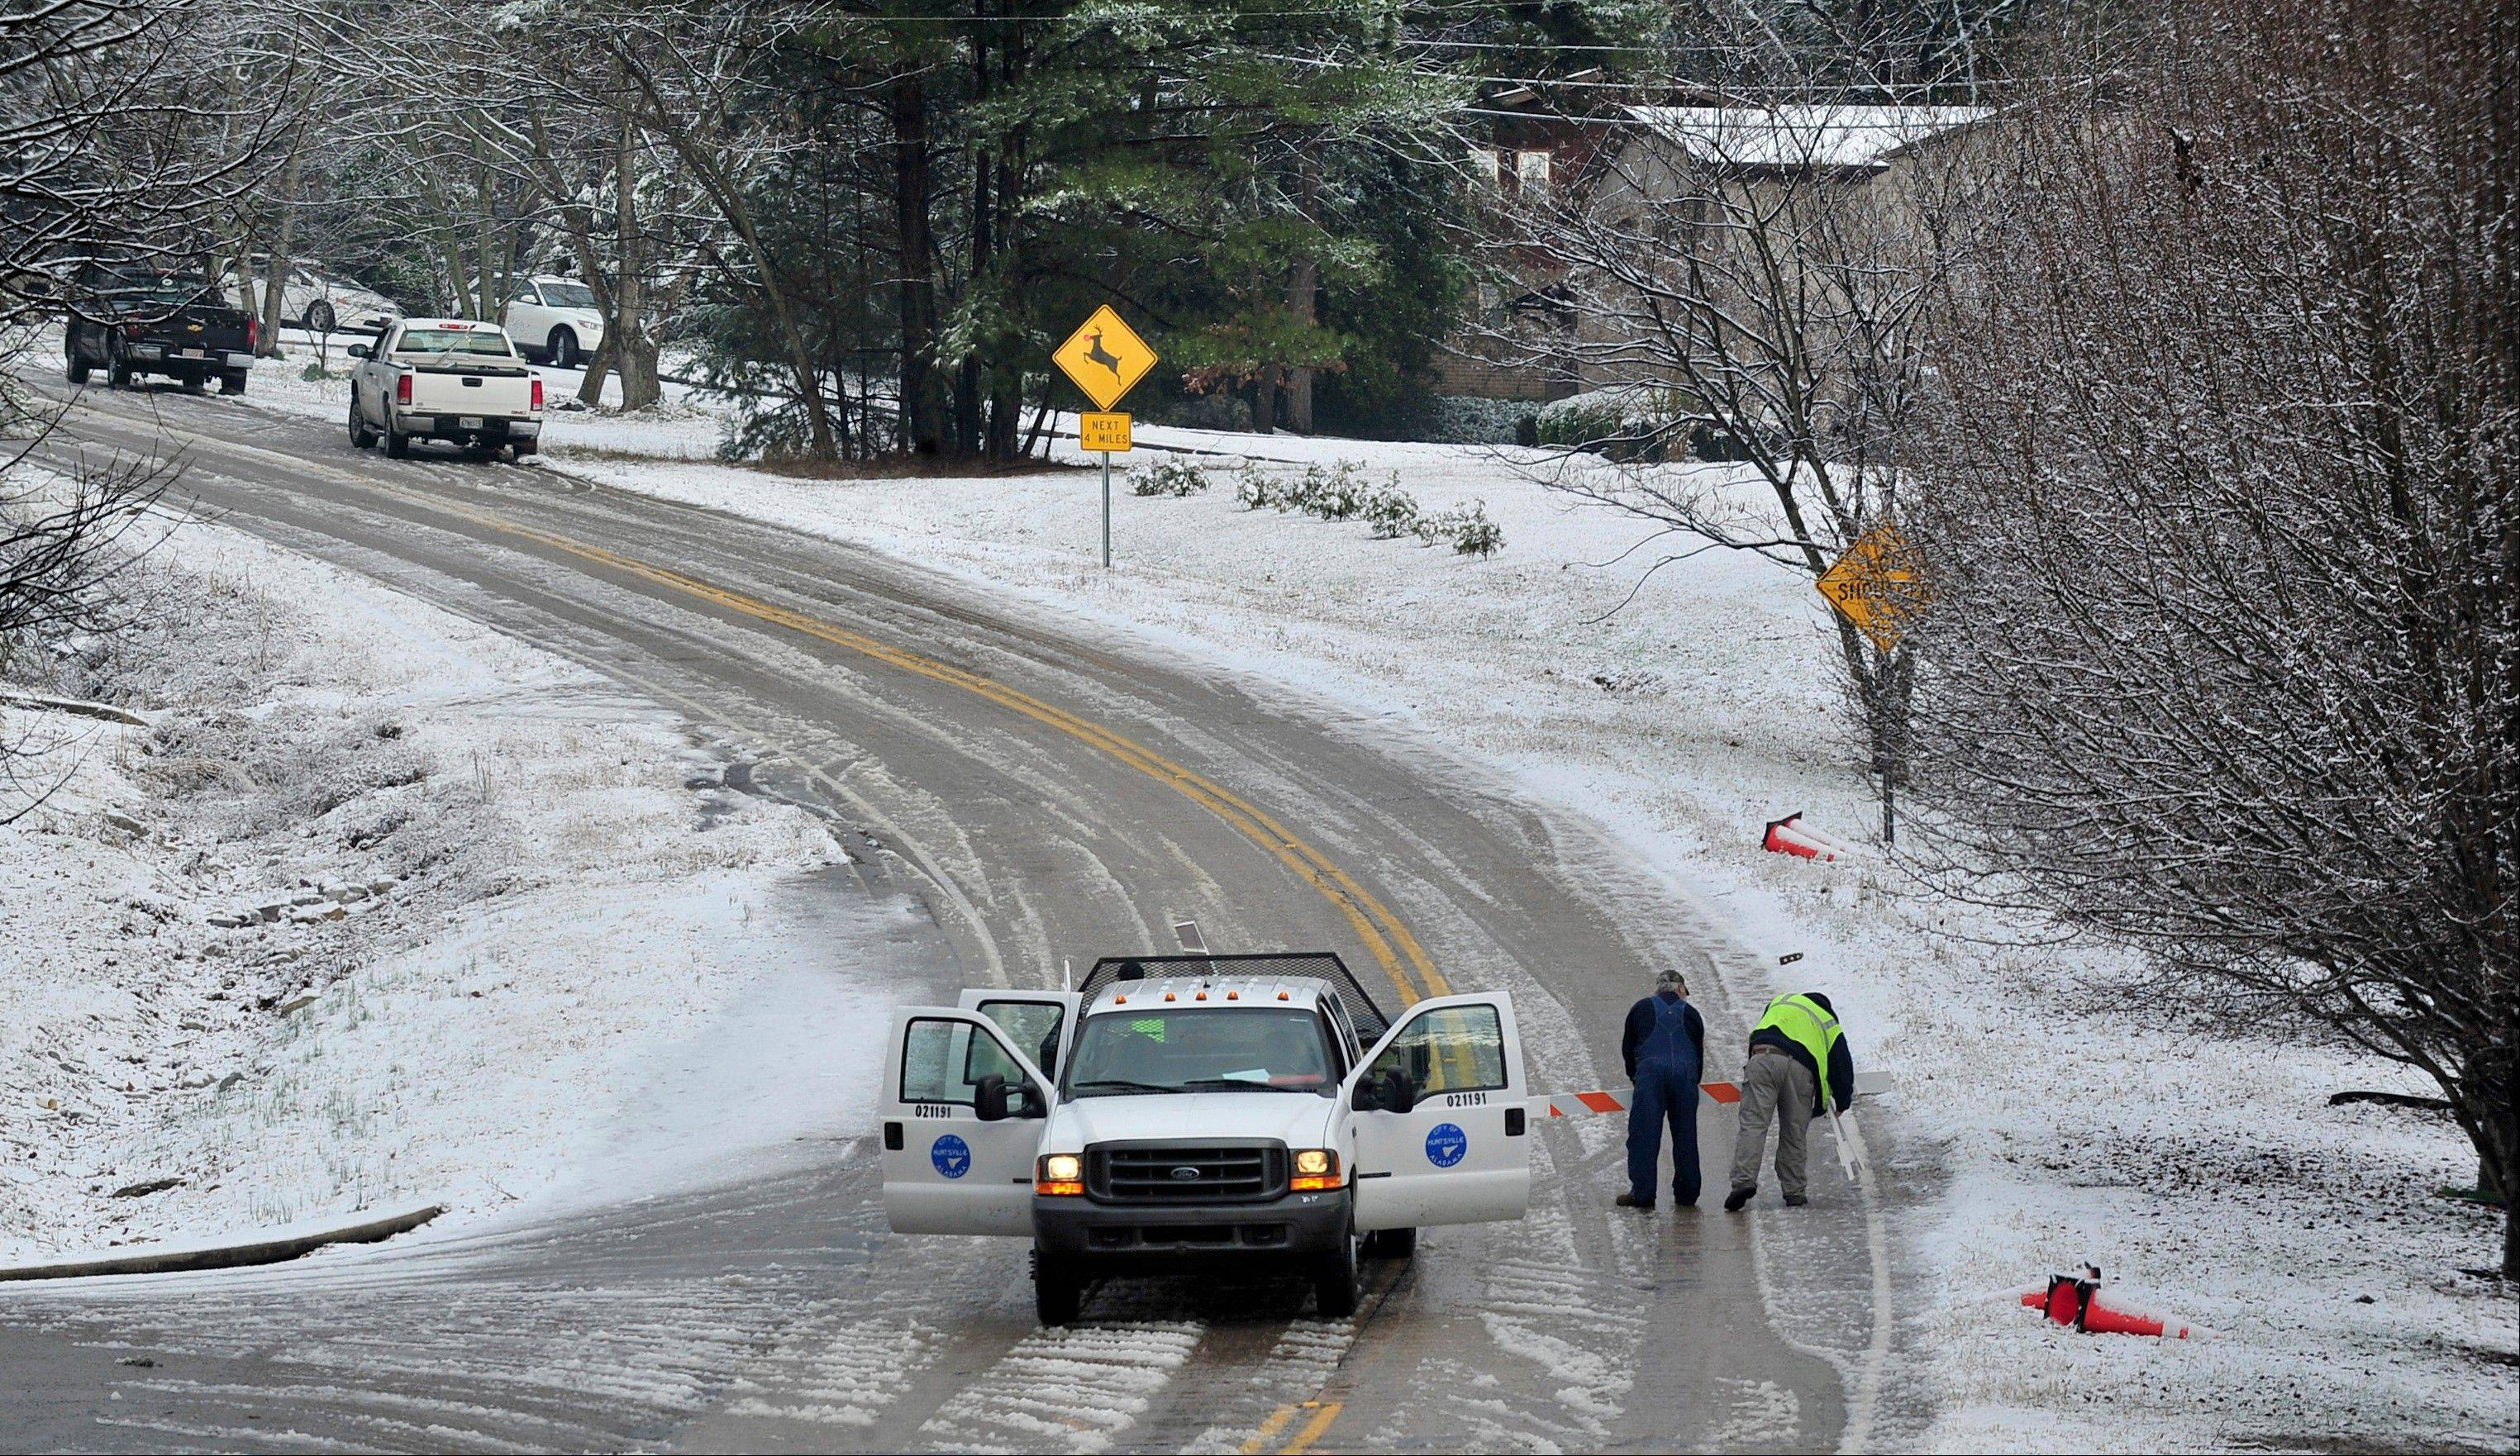 City of Huntsville workers set up road blocks on Green Mountain Road while a salt truck clears the road during a brief winter storm which brought light snow and icy roads to north Alabama Thursday, Jan. 17, 2013 in Huntsville, Ala. A winter storm made its way across the Southeast on Thursday, dumping snow in states recovering from days of rain, playing a role in at least one fatality, and leaving thousands without power.